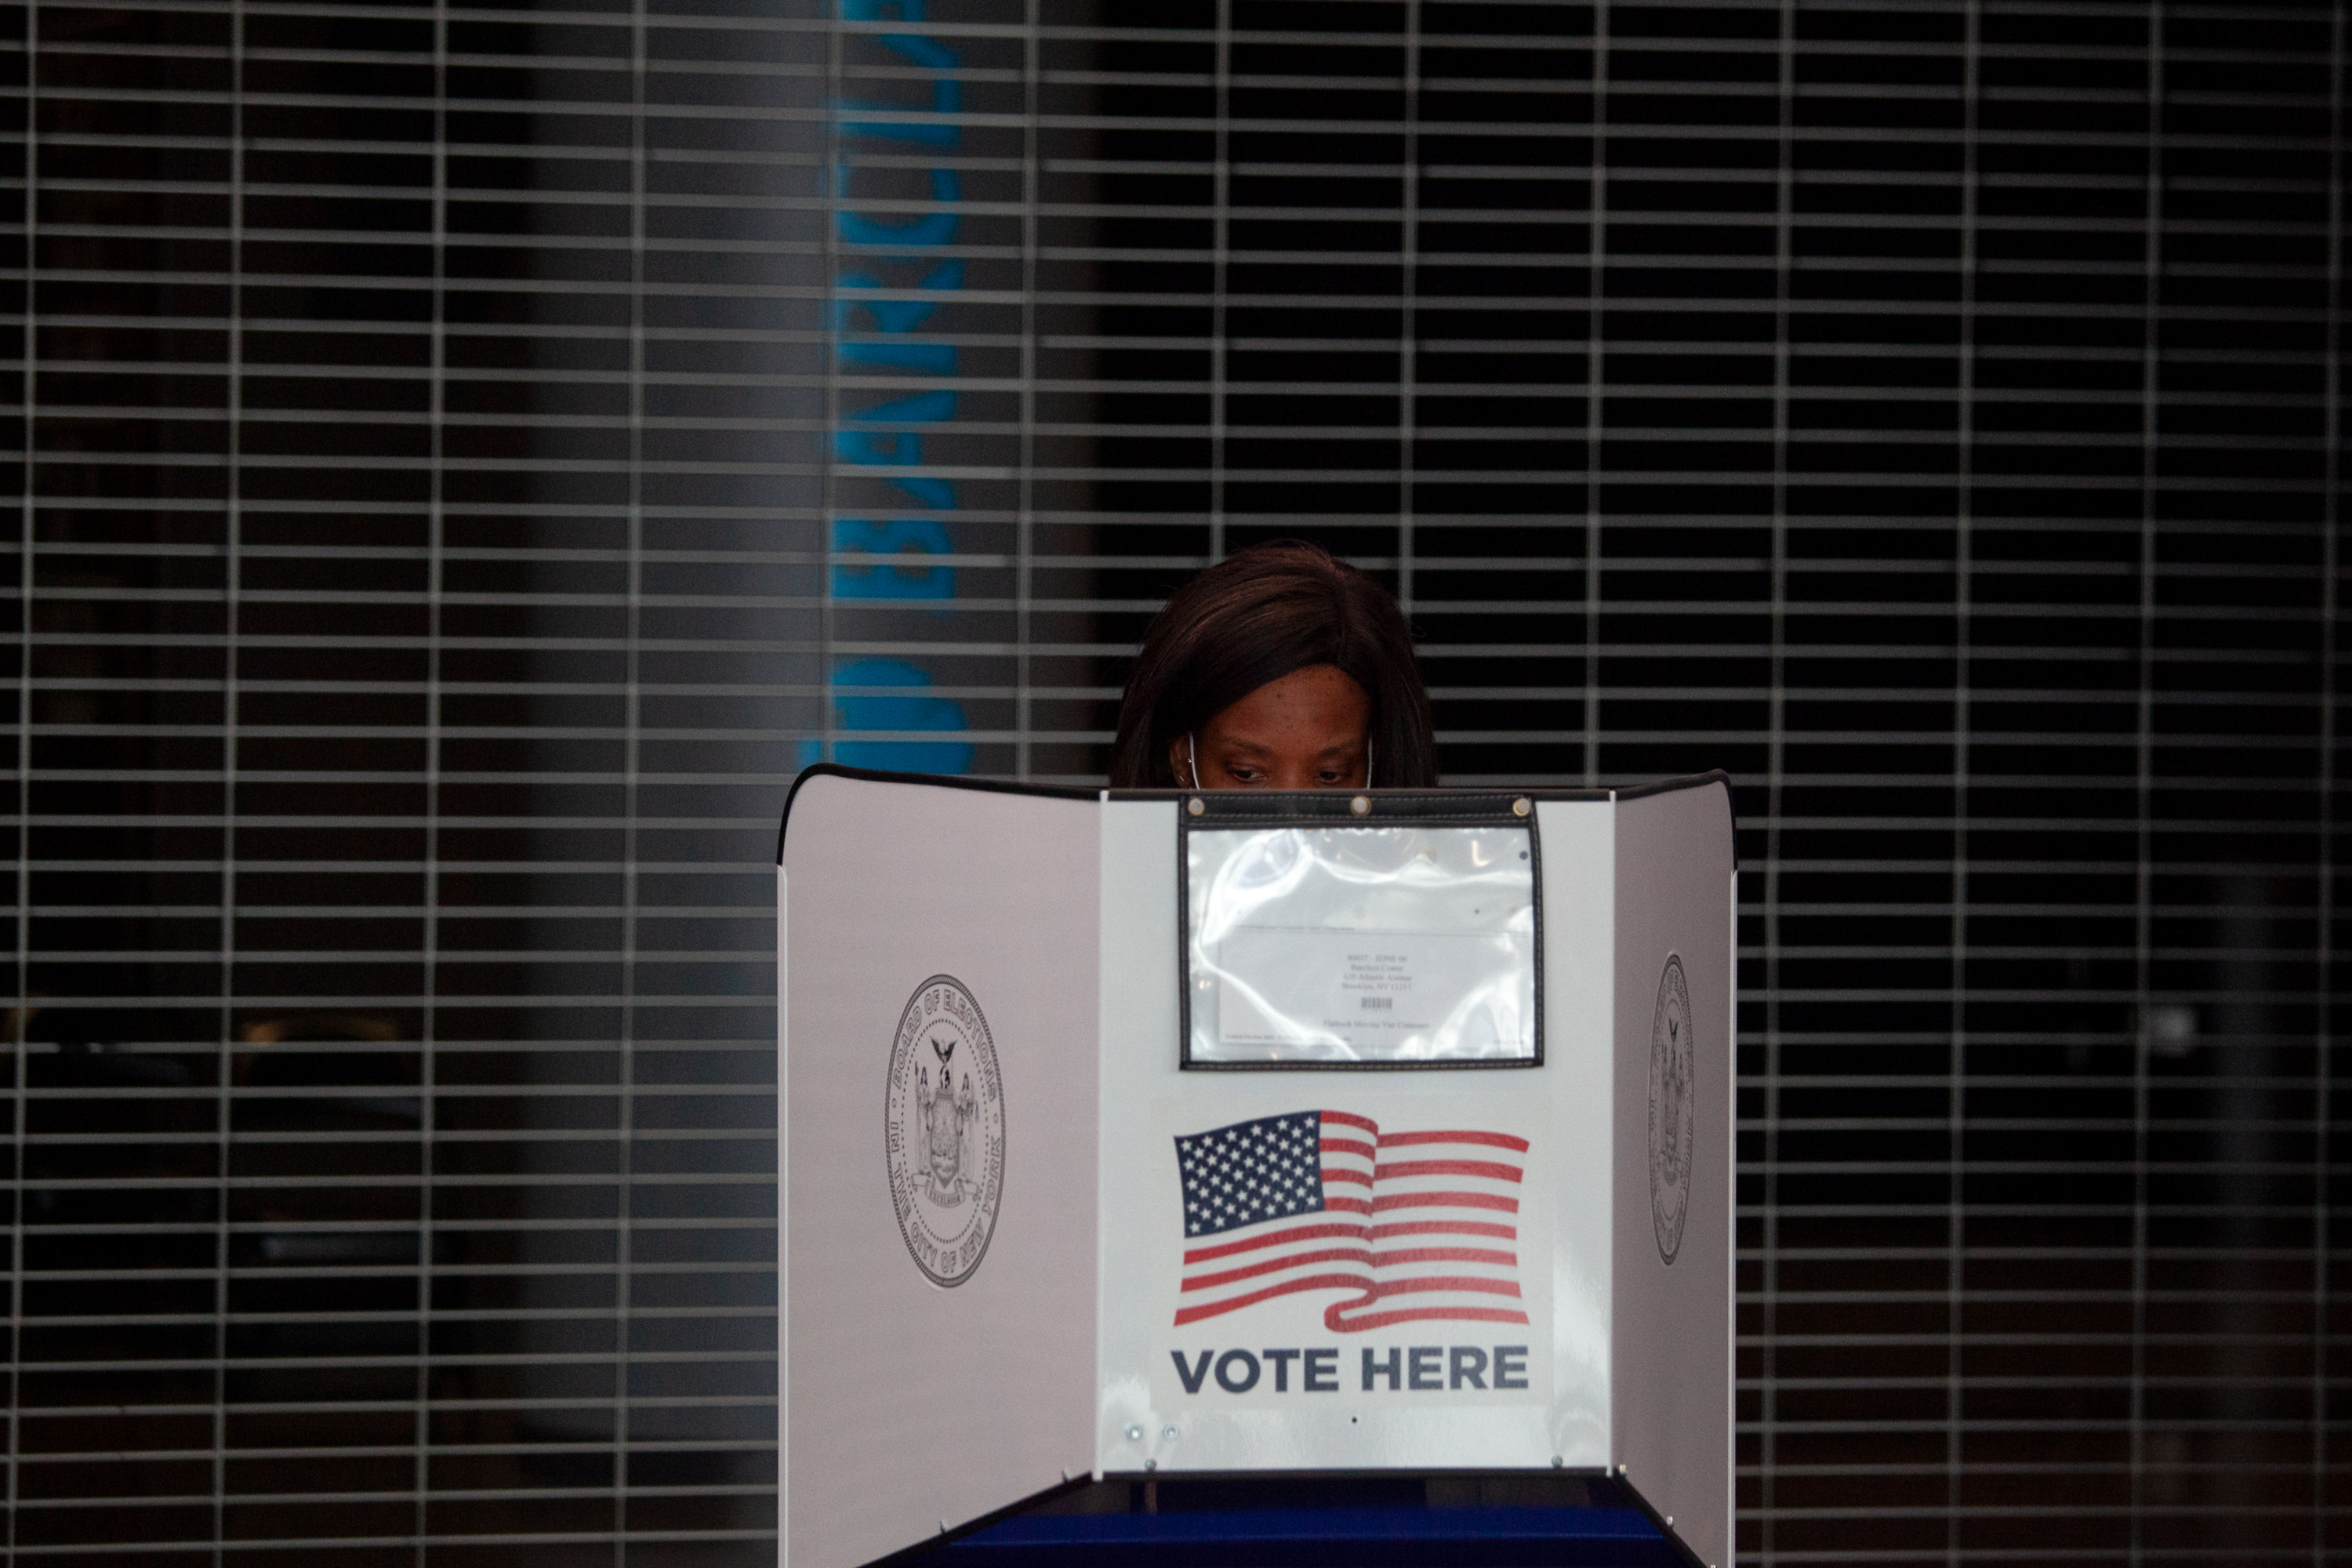 A Brooklyn resident votes at the Barclays Center Saturday morning, Oct. 24, 2020.